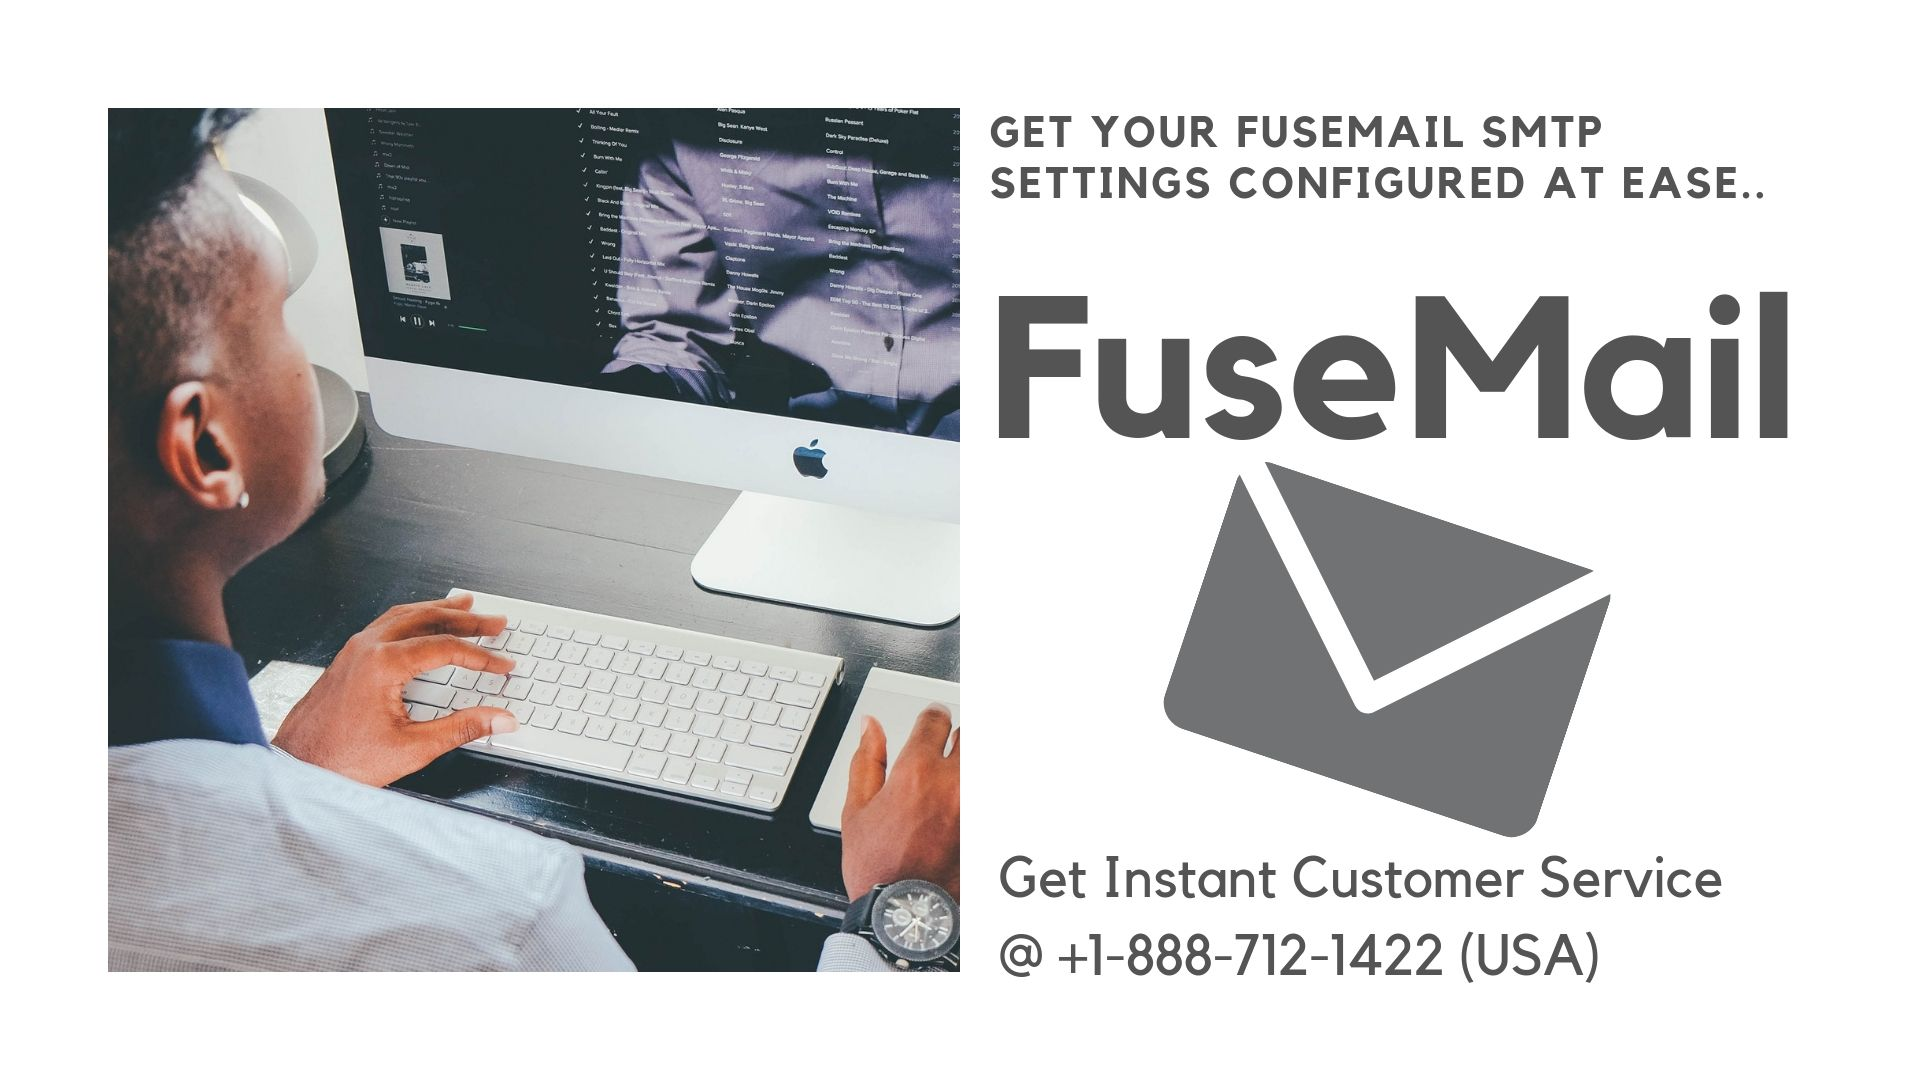 Configure your FuseMail SMTP server settings while setting